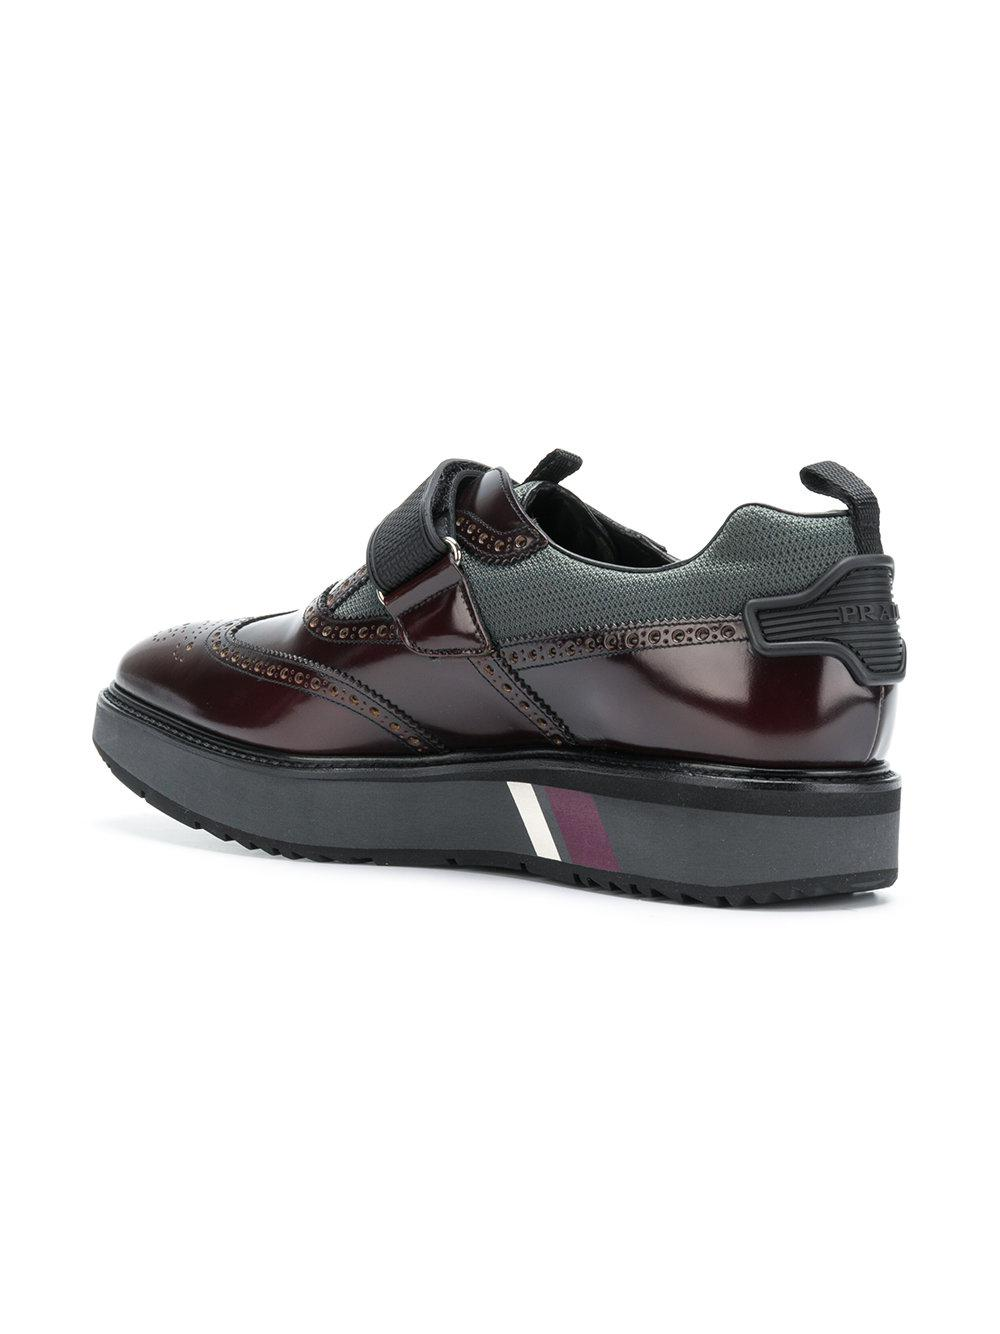 touch strap fastening shoes - Pink & Purple Prada